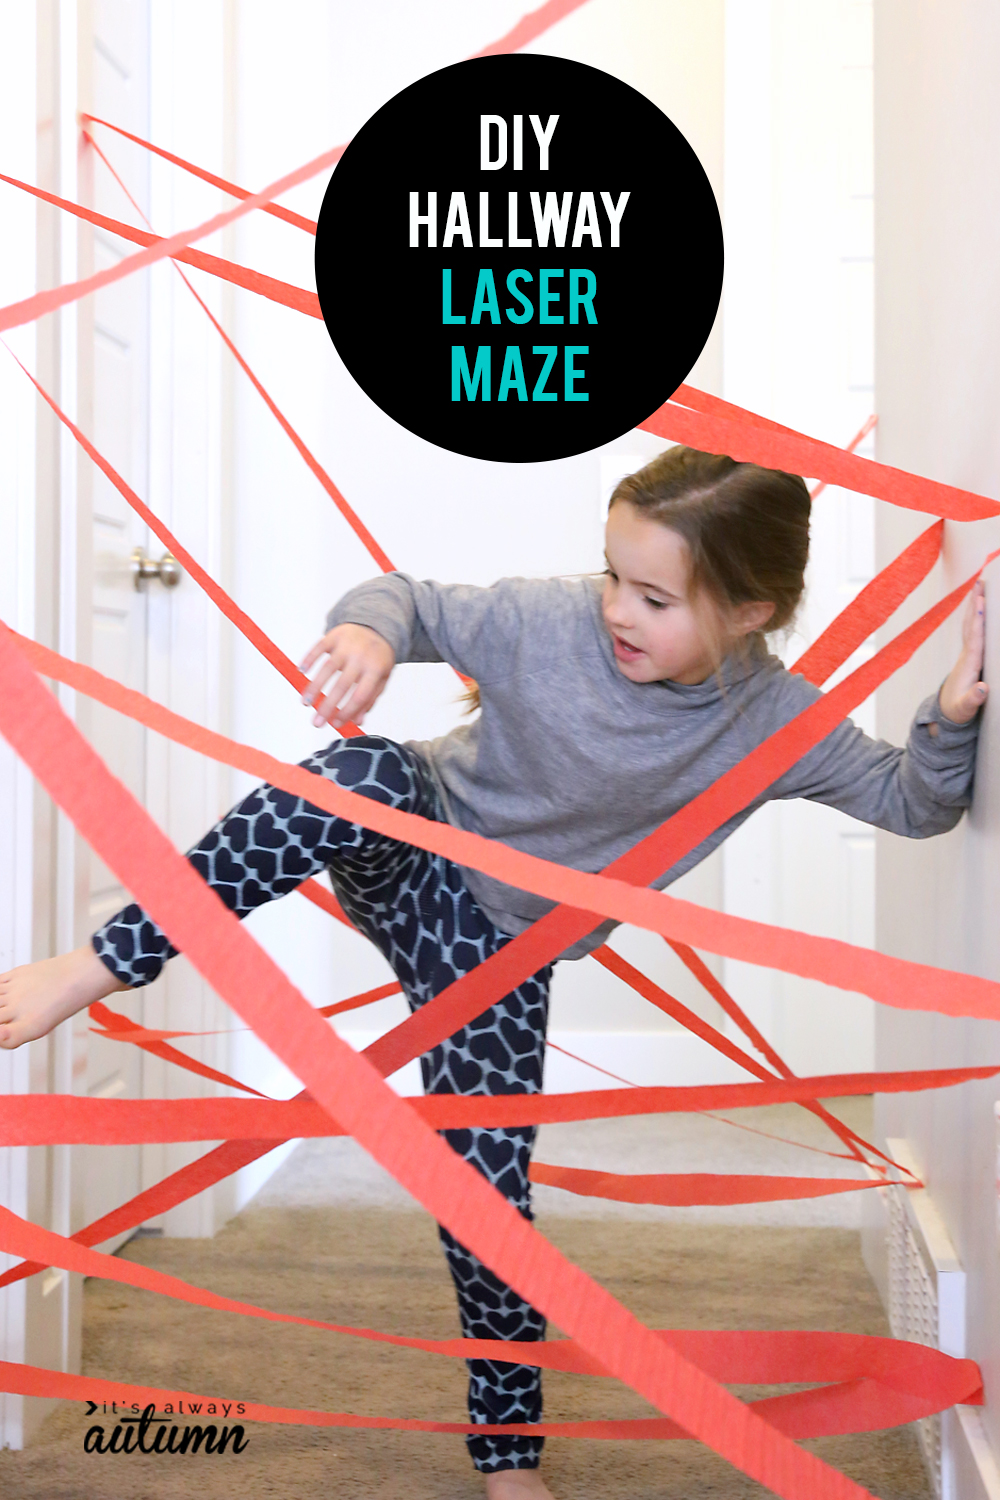 This DIY hallway laser maze is a fun, easy activity to set up for your kids. Perfect for rainy days!